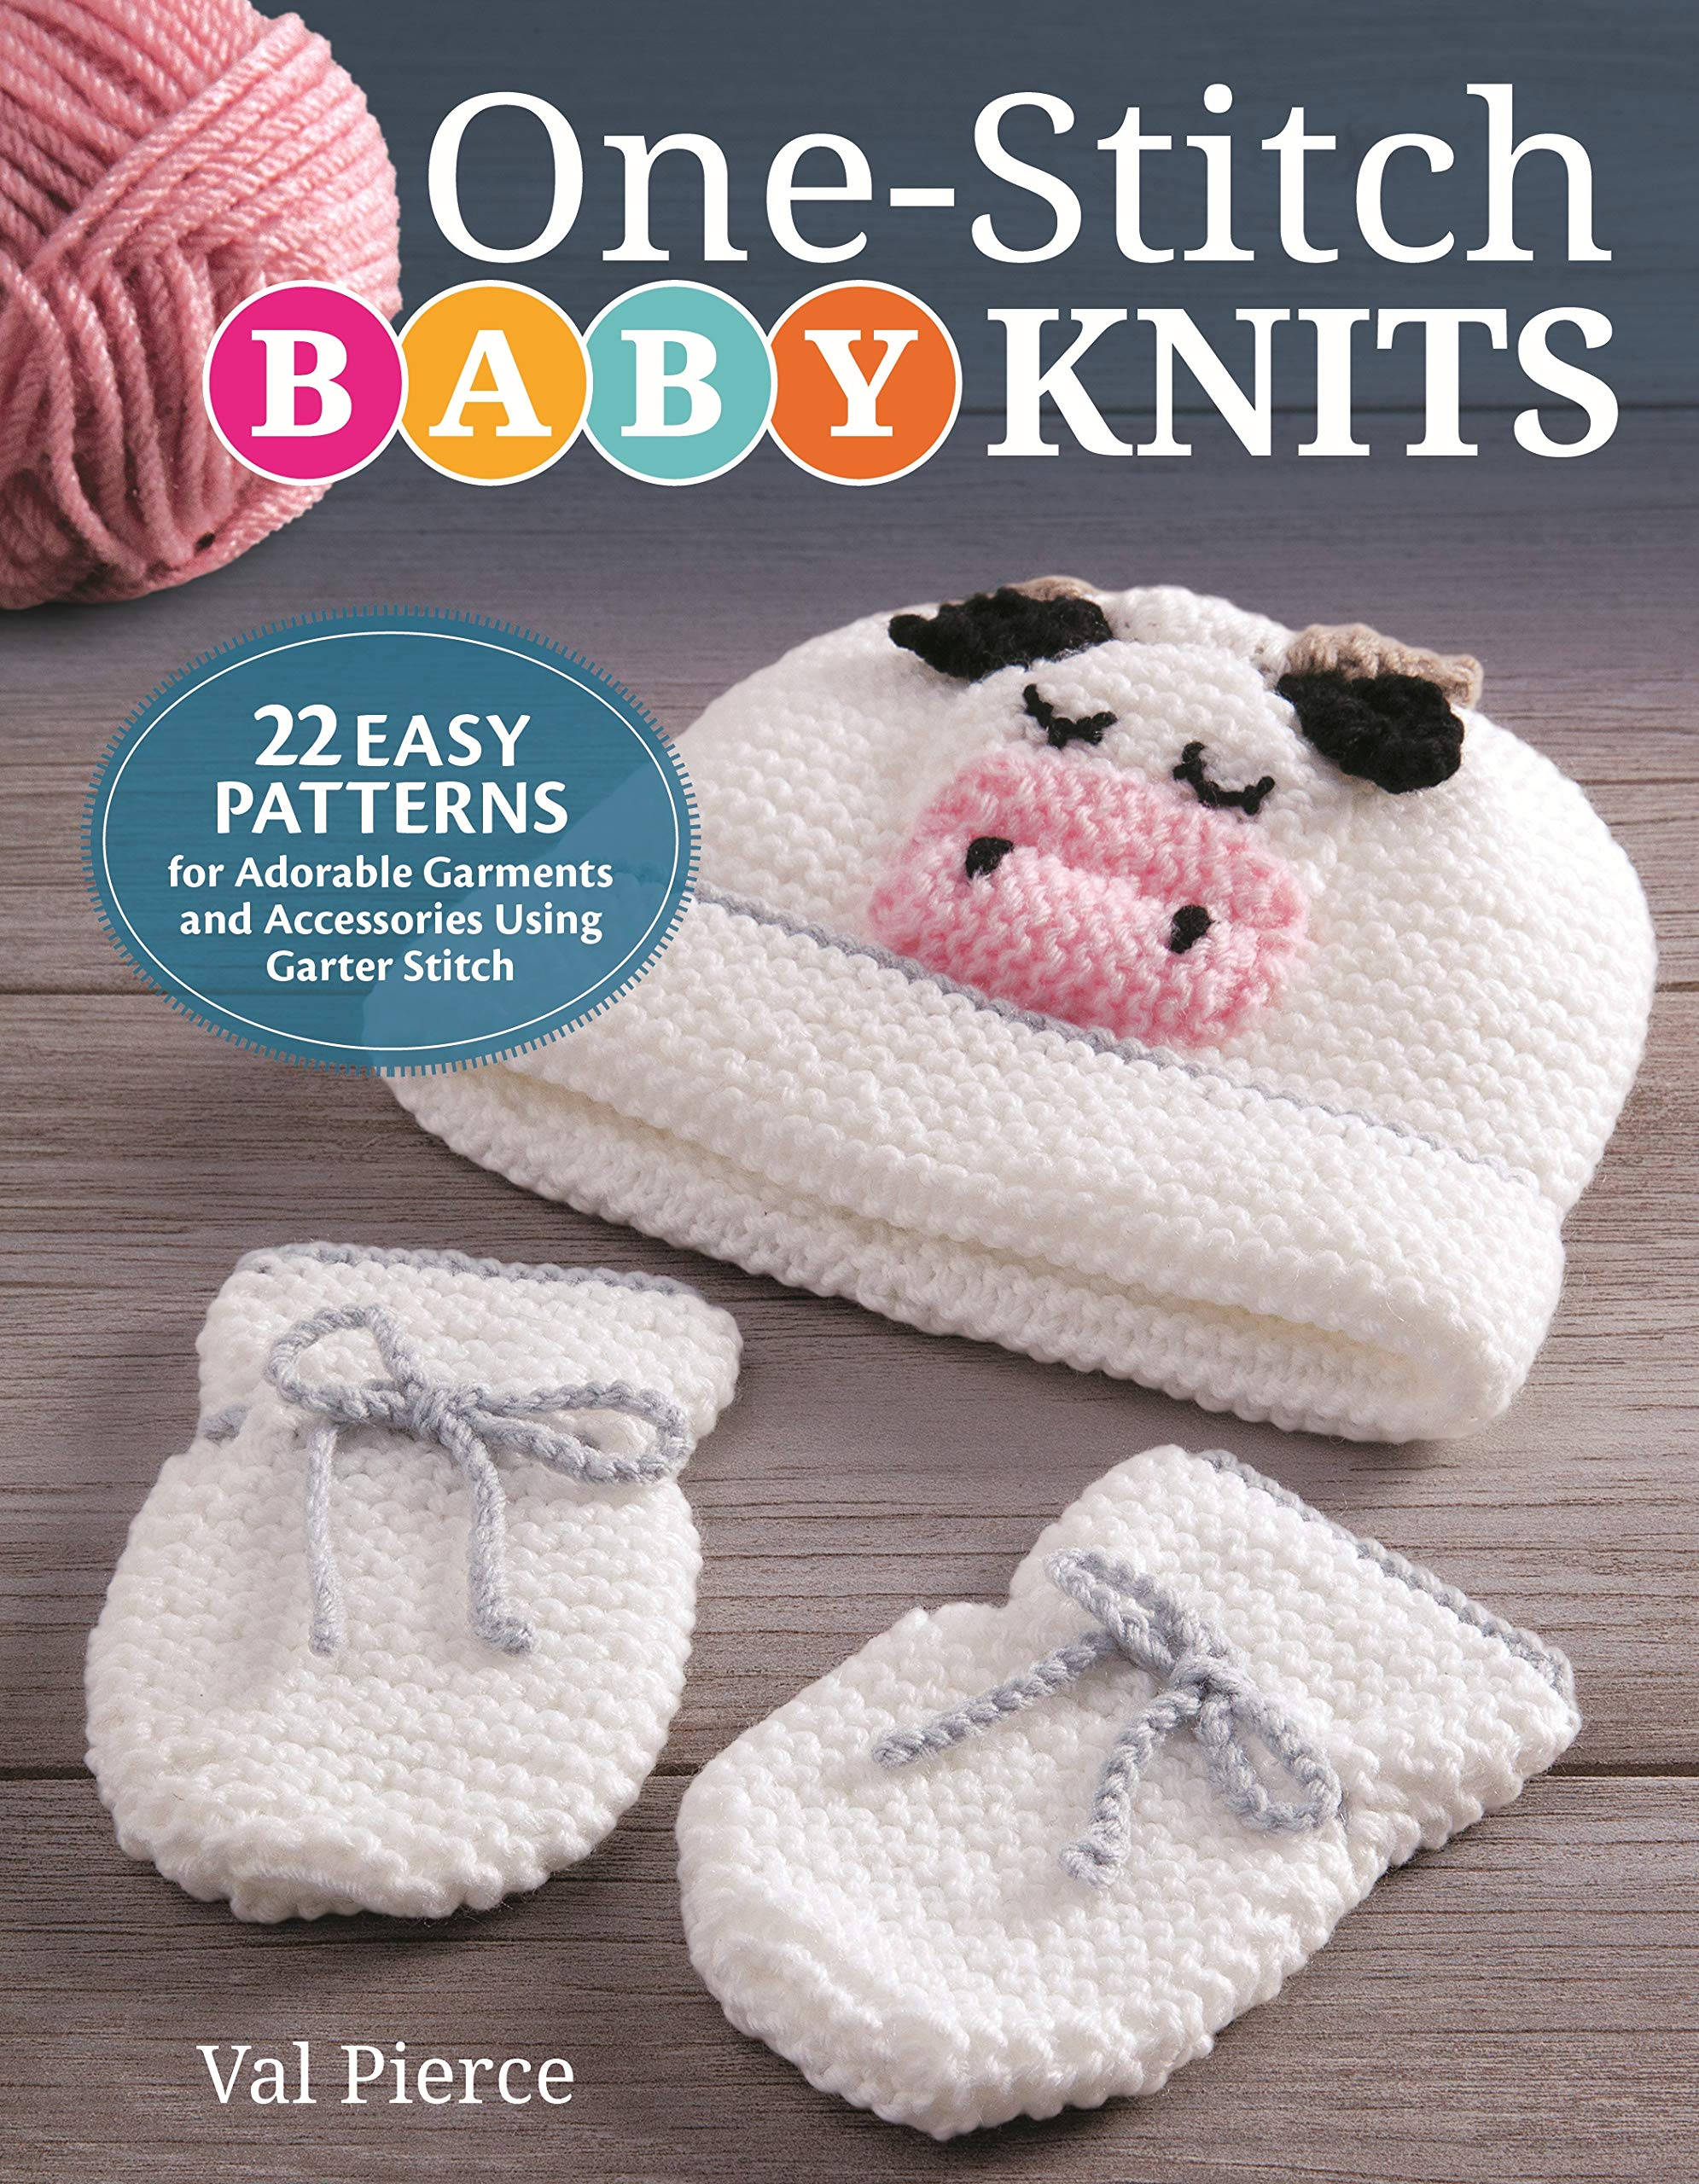 One Stitch Baby Knits Accessories Beginner Friendly product image